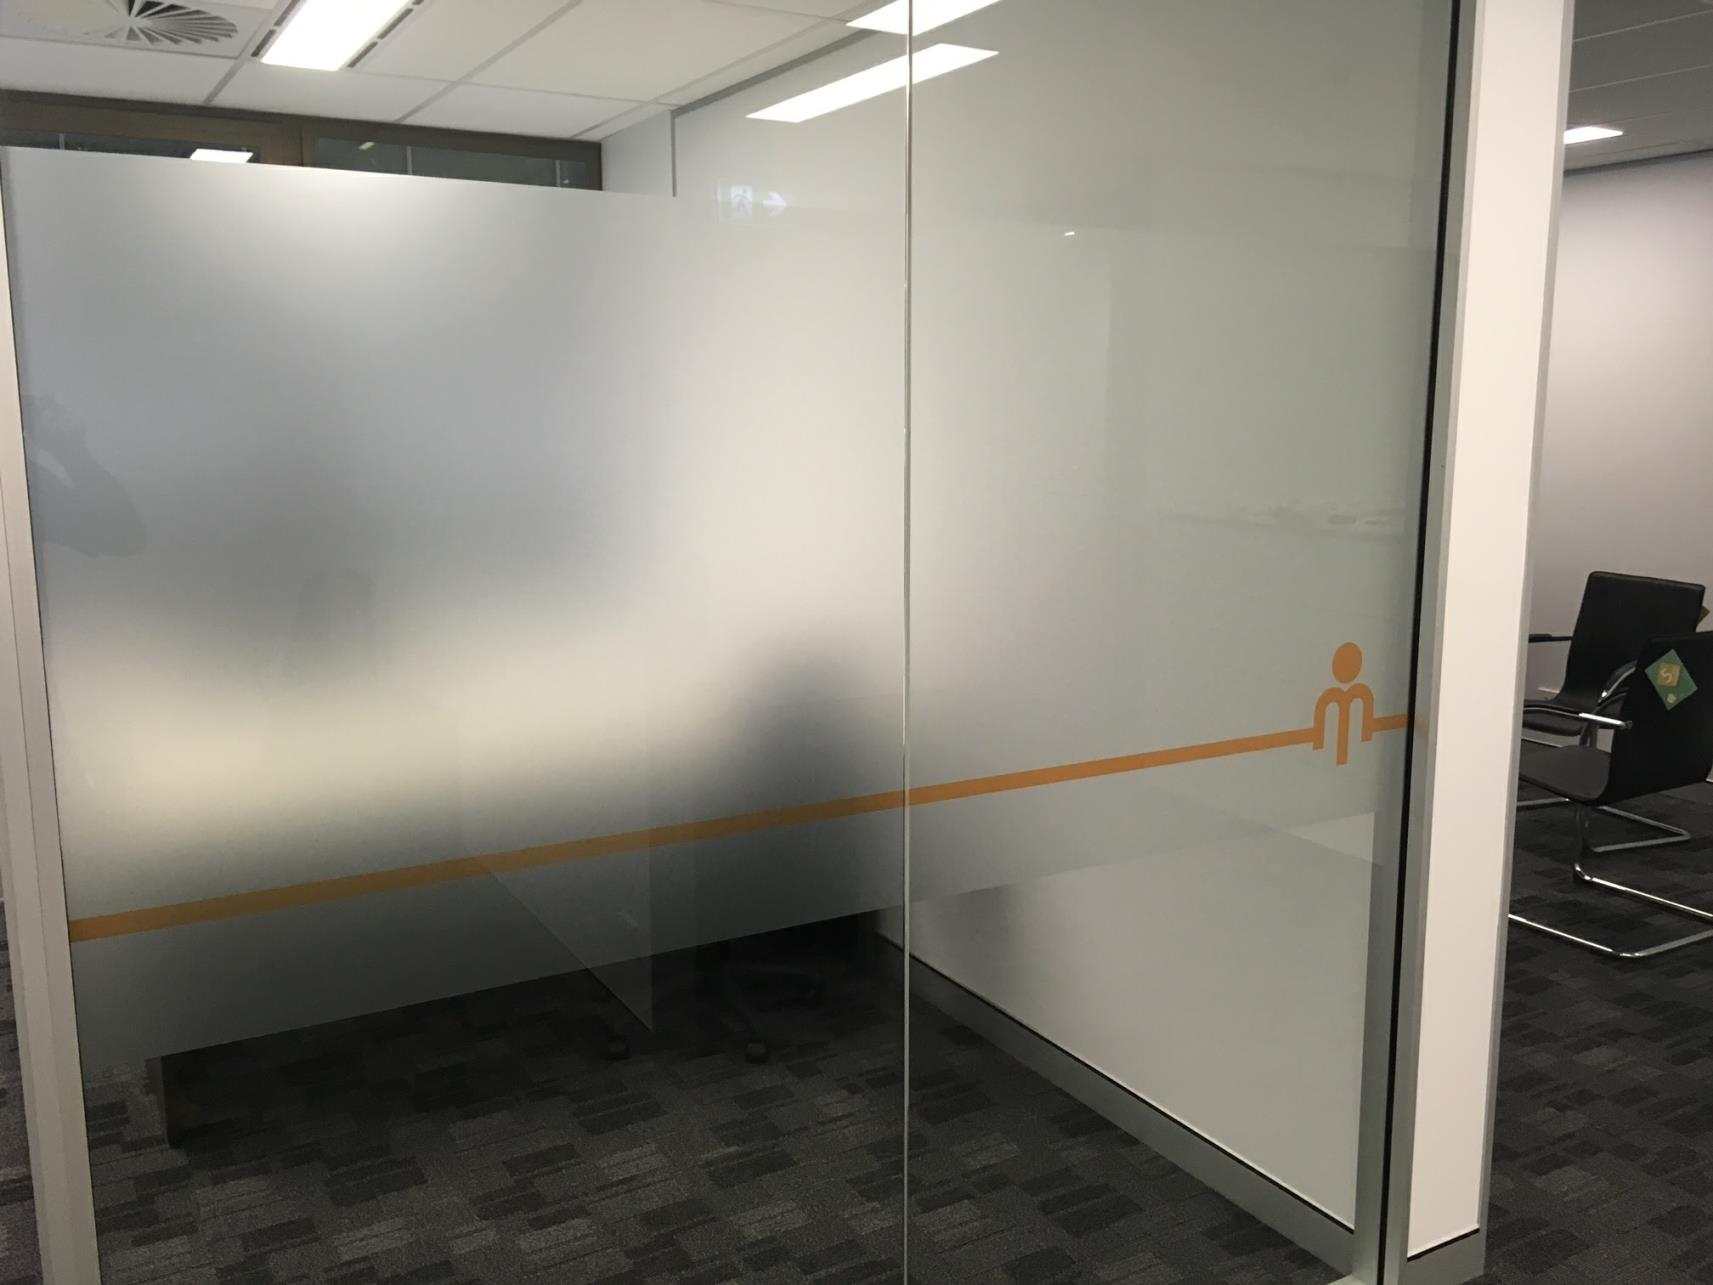 sydney-glass-frosting-glassfrosting.net.au-decorative-frost-office-carlingford-lidcombe-granville